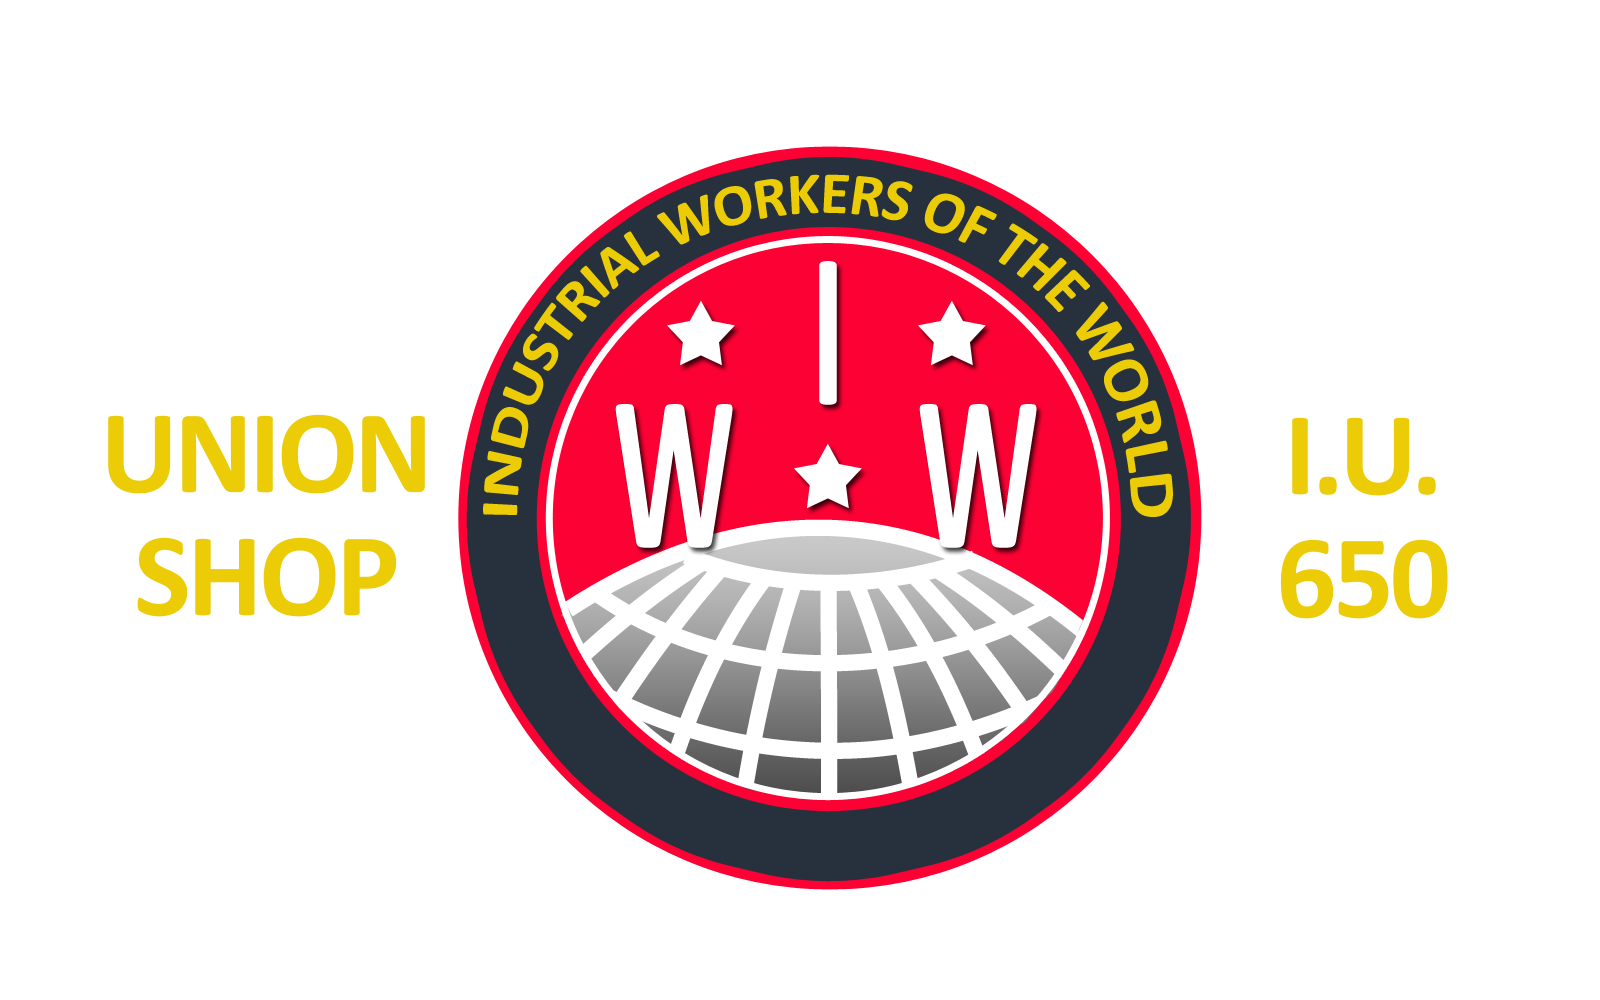 Site union-made by I.W.W. Industrial Union 650